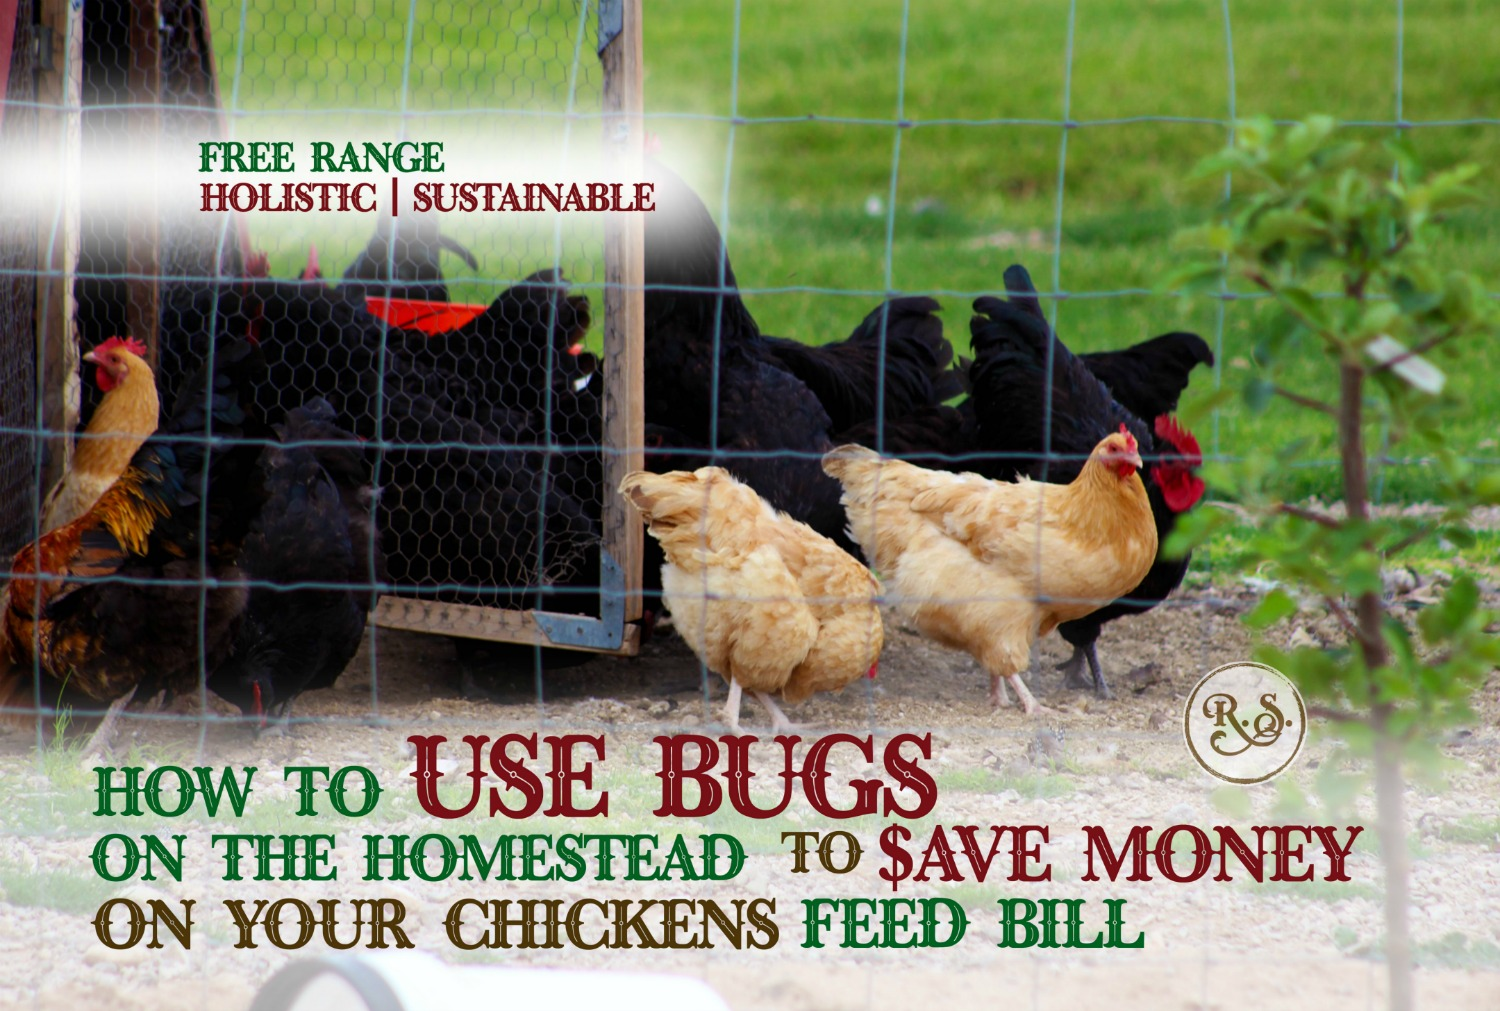 Manage your chickens to eat bugs around your homestead and save money on their feed bill. Small changes are how you get raise sustainable chickens. Your backyard chickens will love the freedom too.